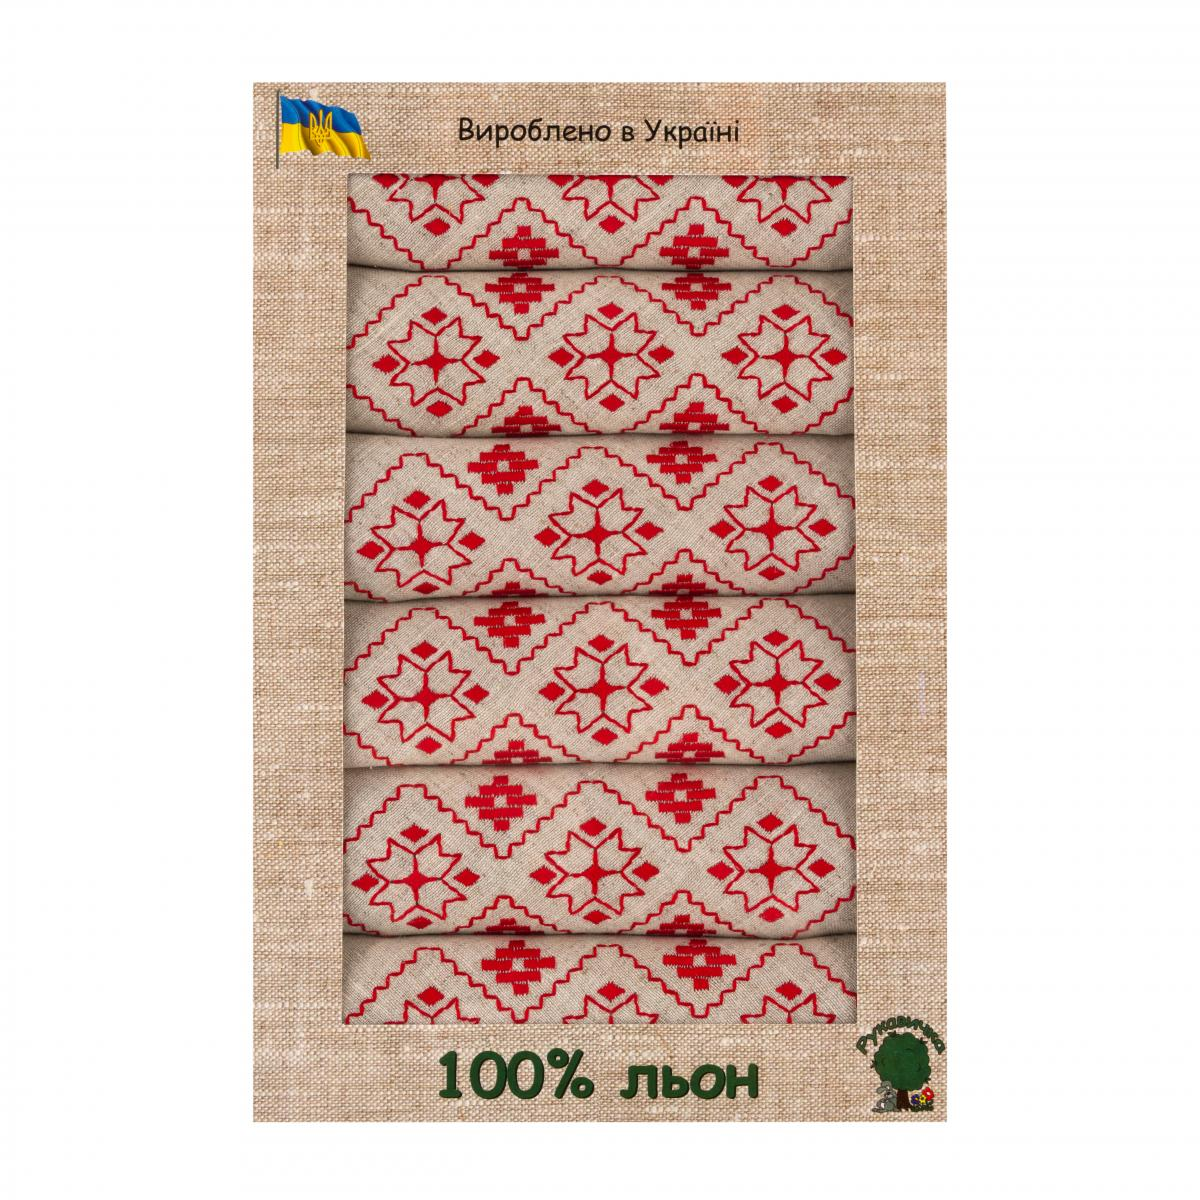 A set of linen napkins with Ukrainian embroidery